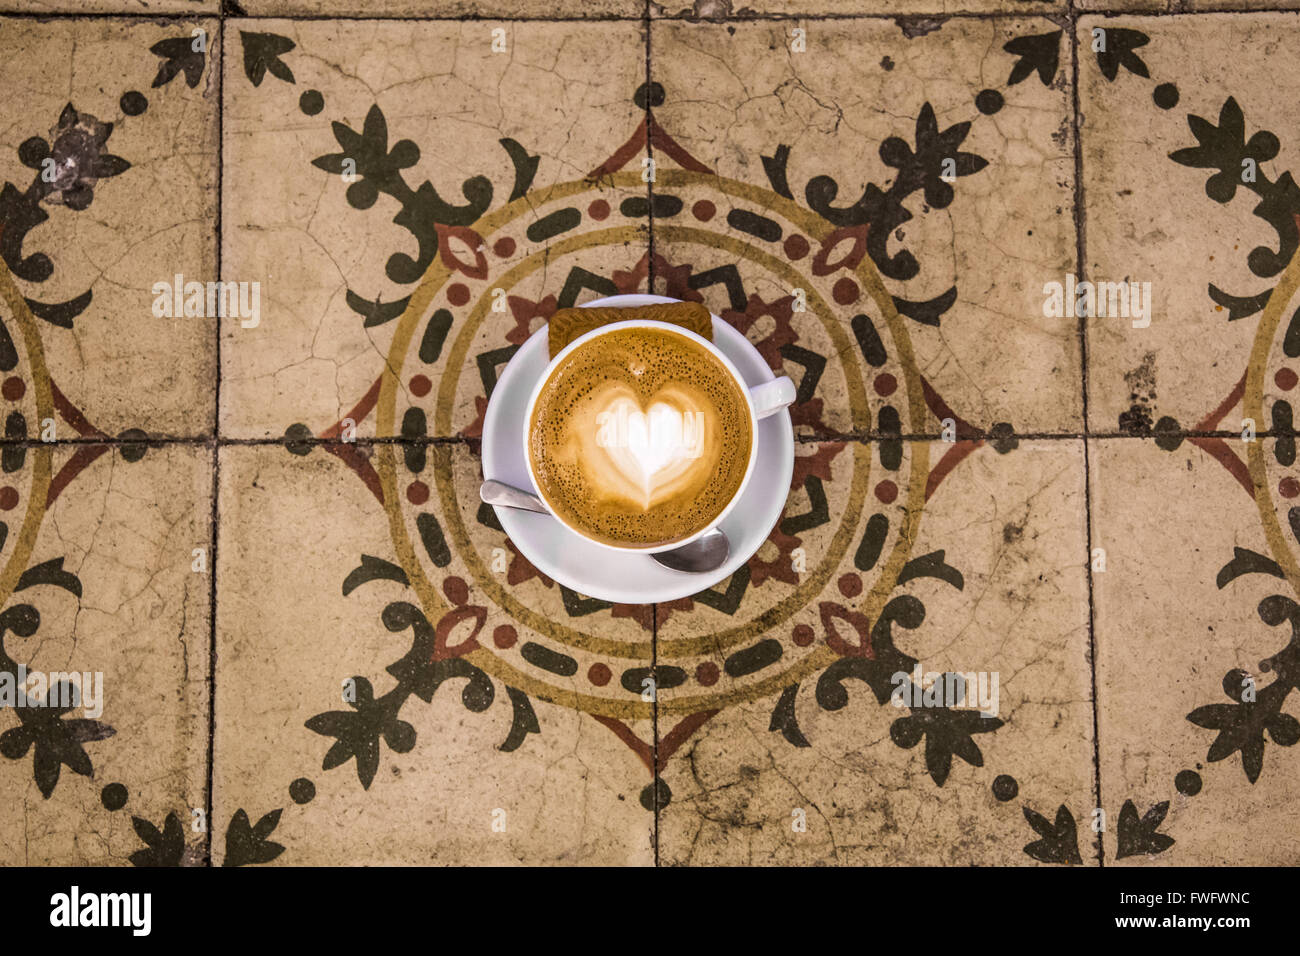 Cafe latte with heart latte art on Spanish tiles - Stock Image